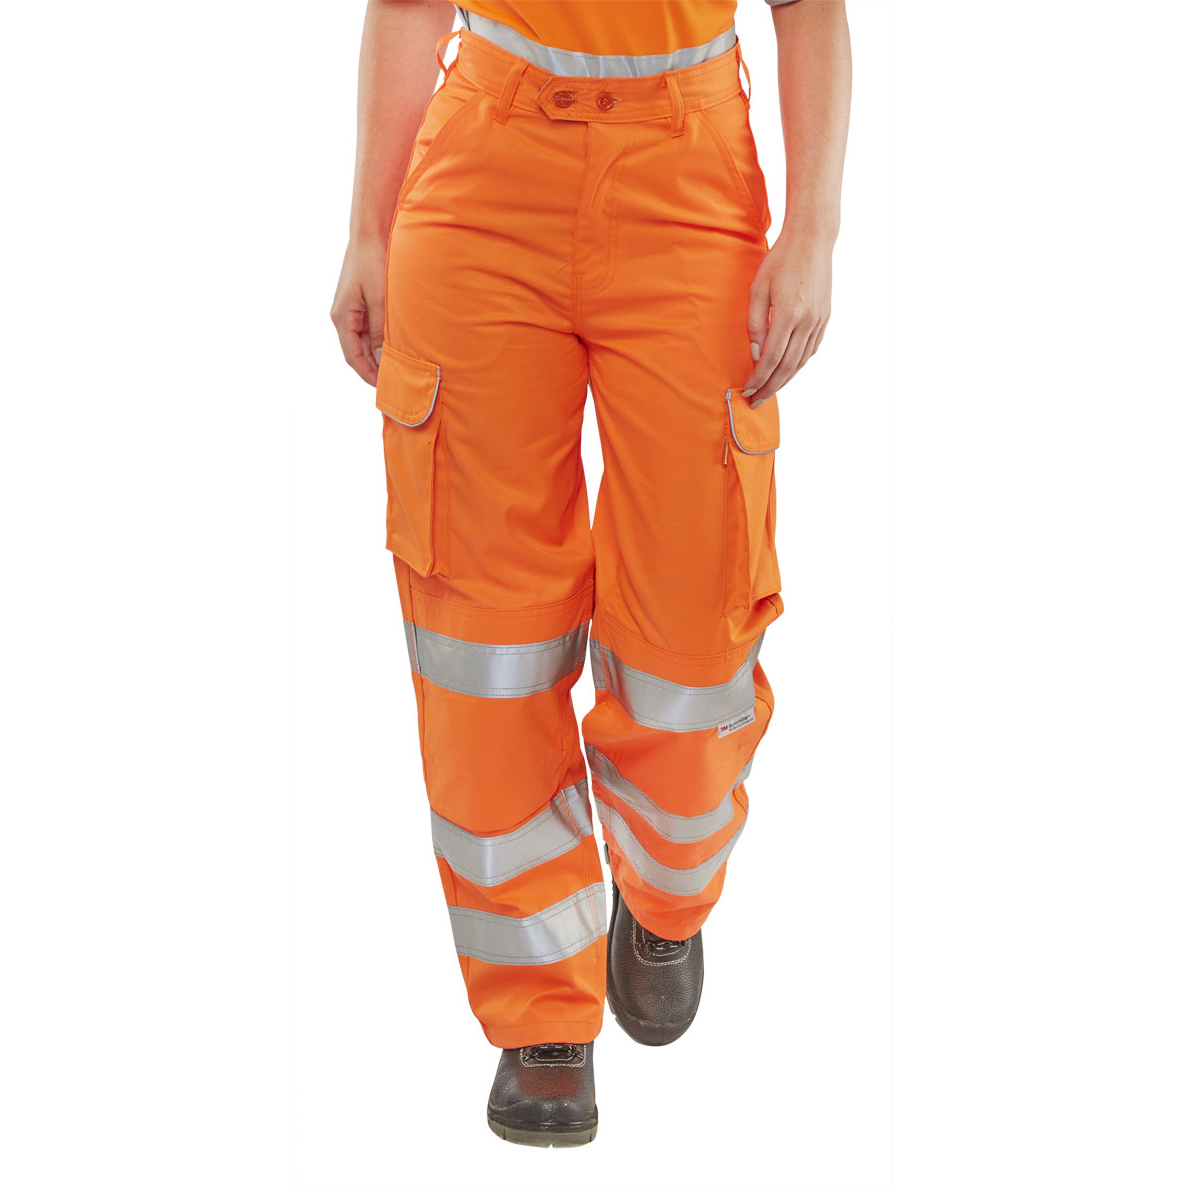 Ladies BSeen Rail Spec Trousers Ladies Teflon Hi-Vis Reflective Orange 30 Ref LRST30 *Up to 3 Day Leadtime*